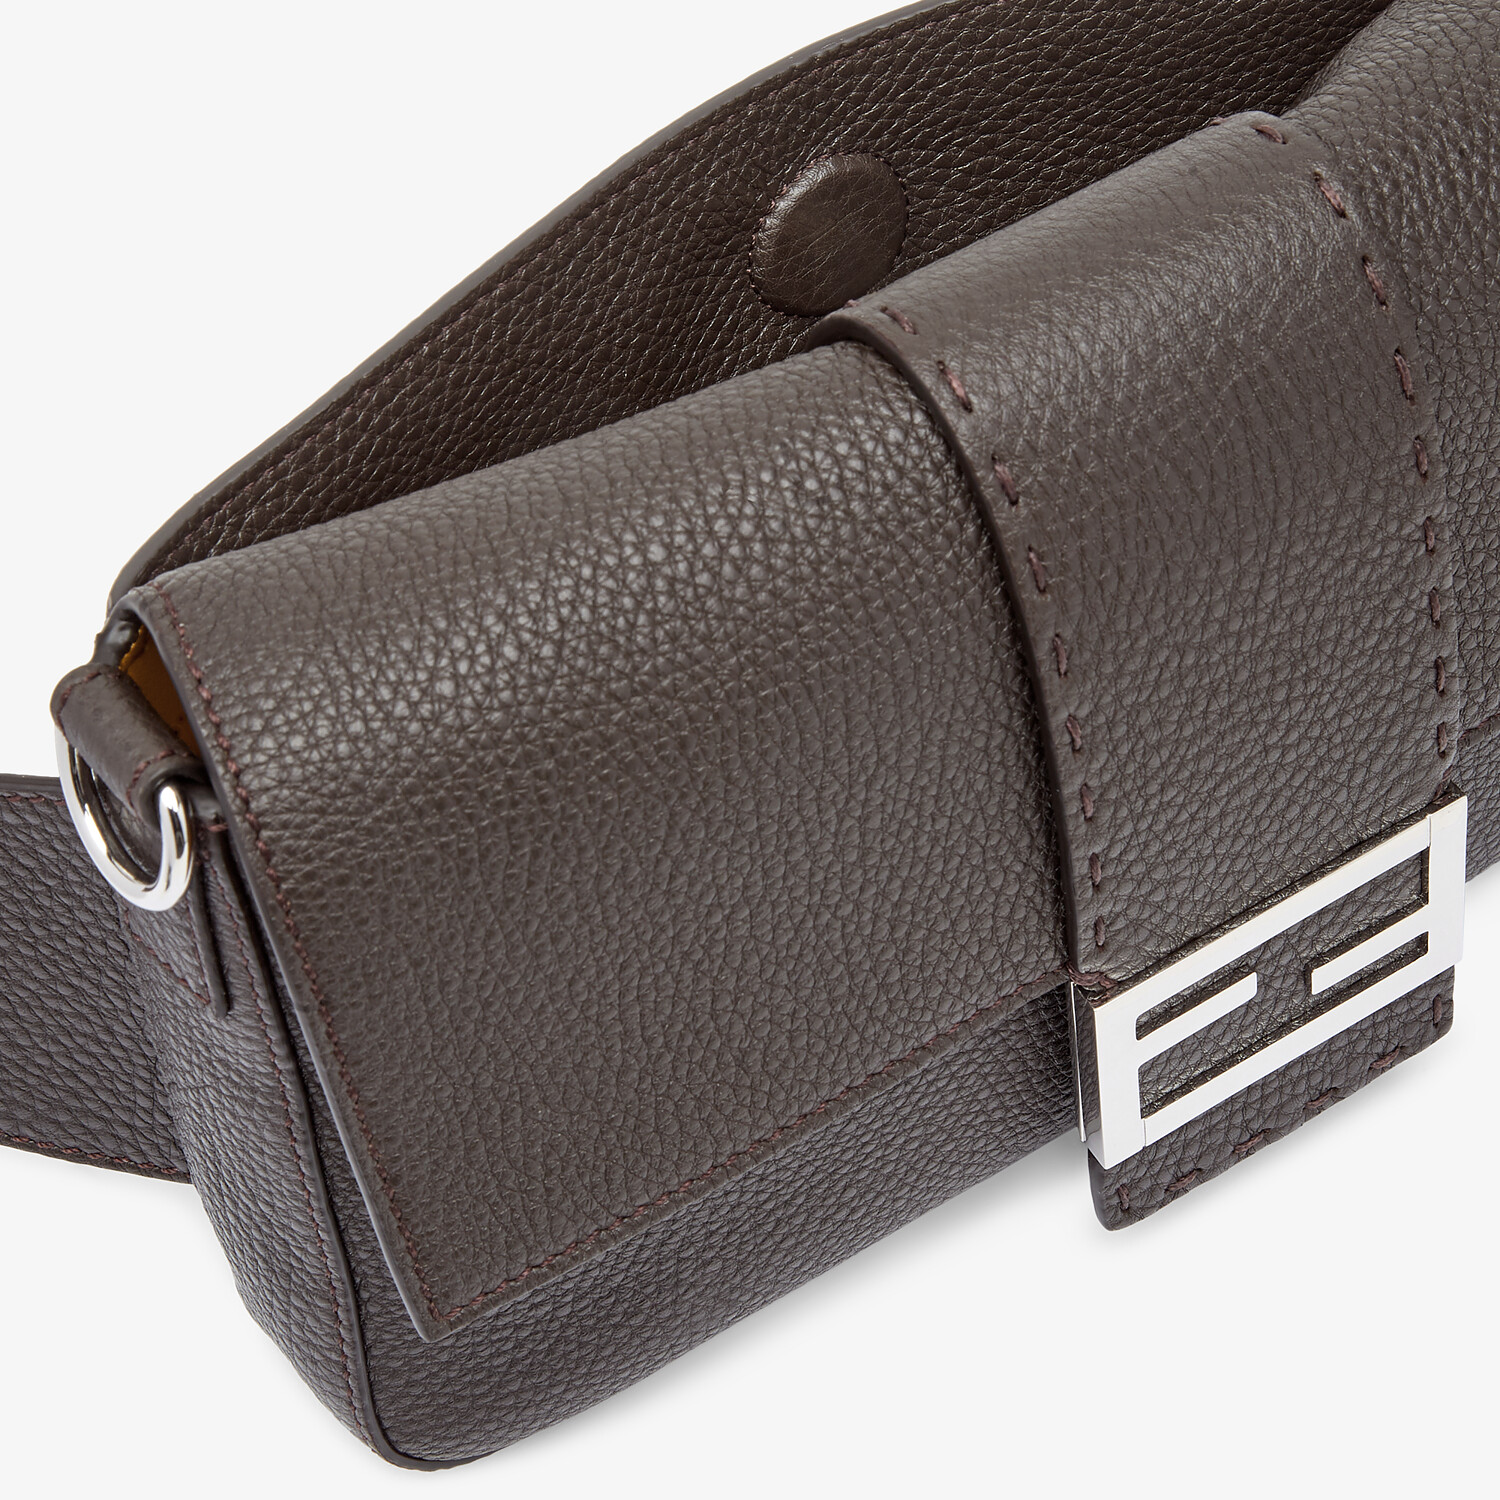 FENDI BAGUETTE - Brown leather bag - view 6 detail